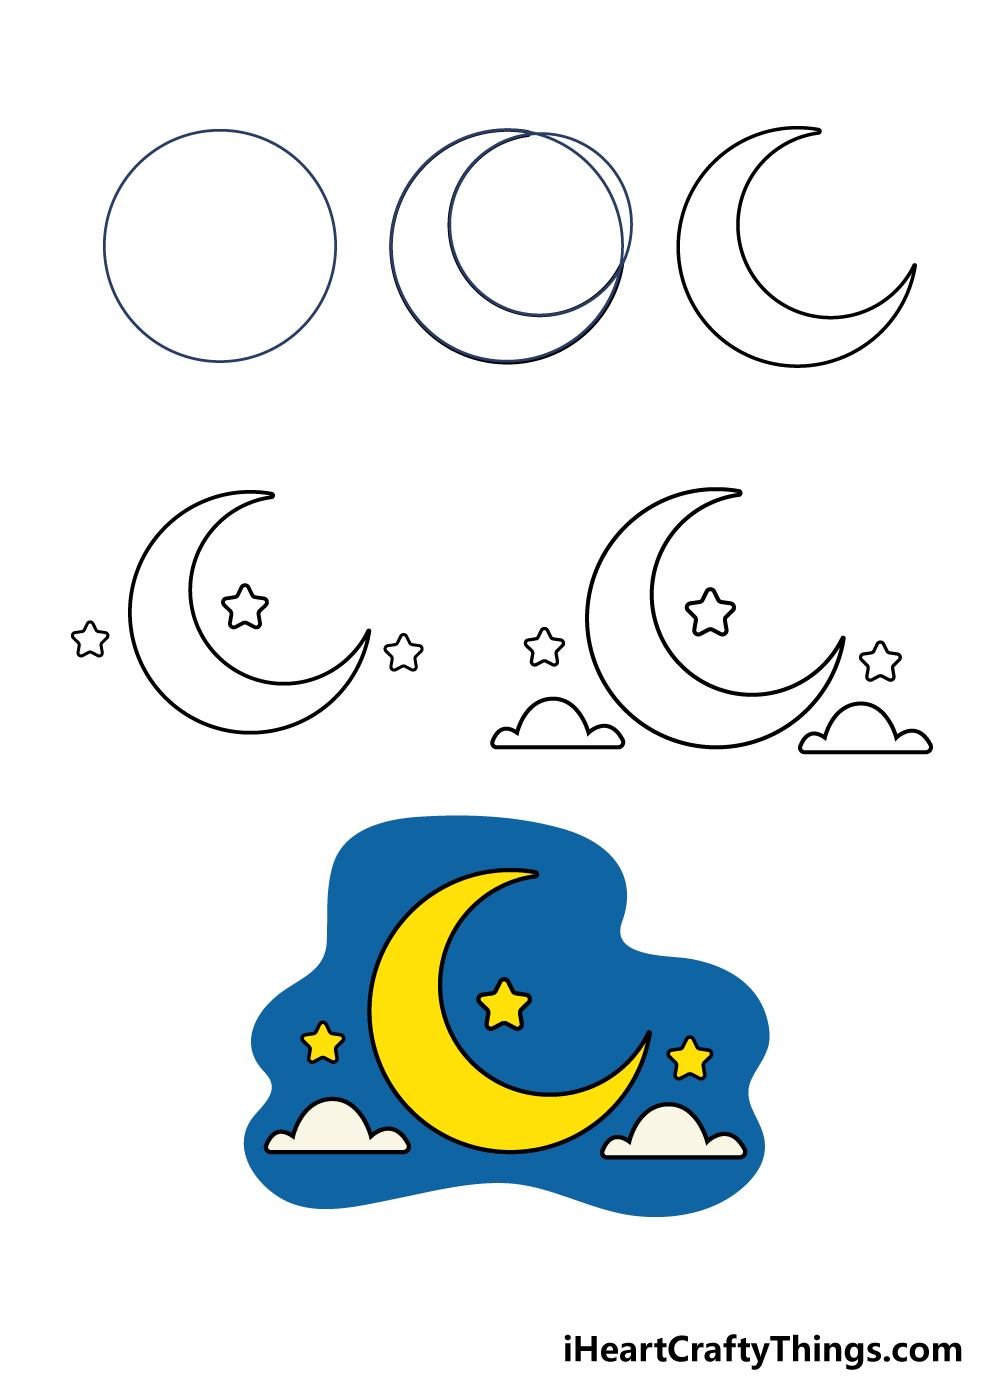 how to draw a moon in 6 steps